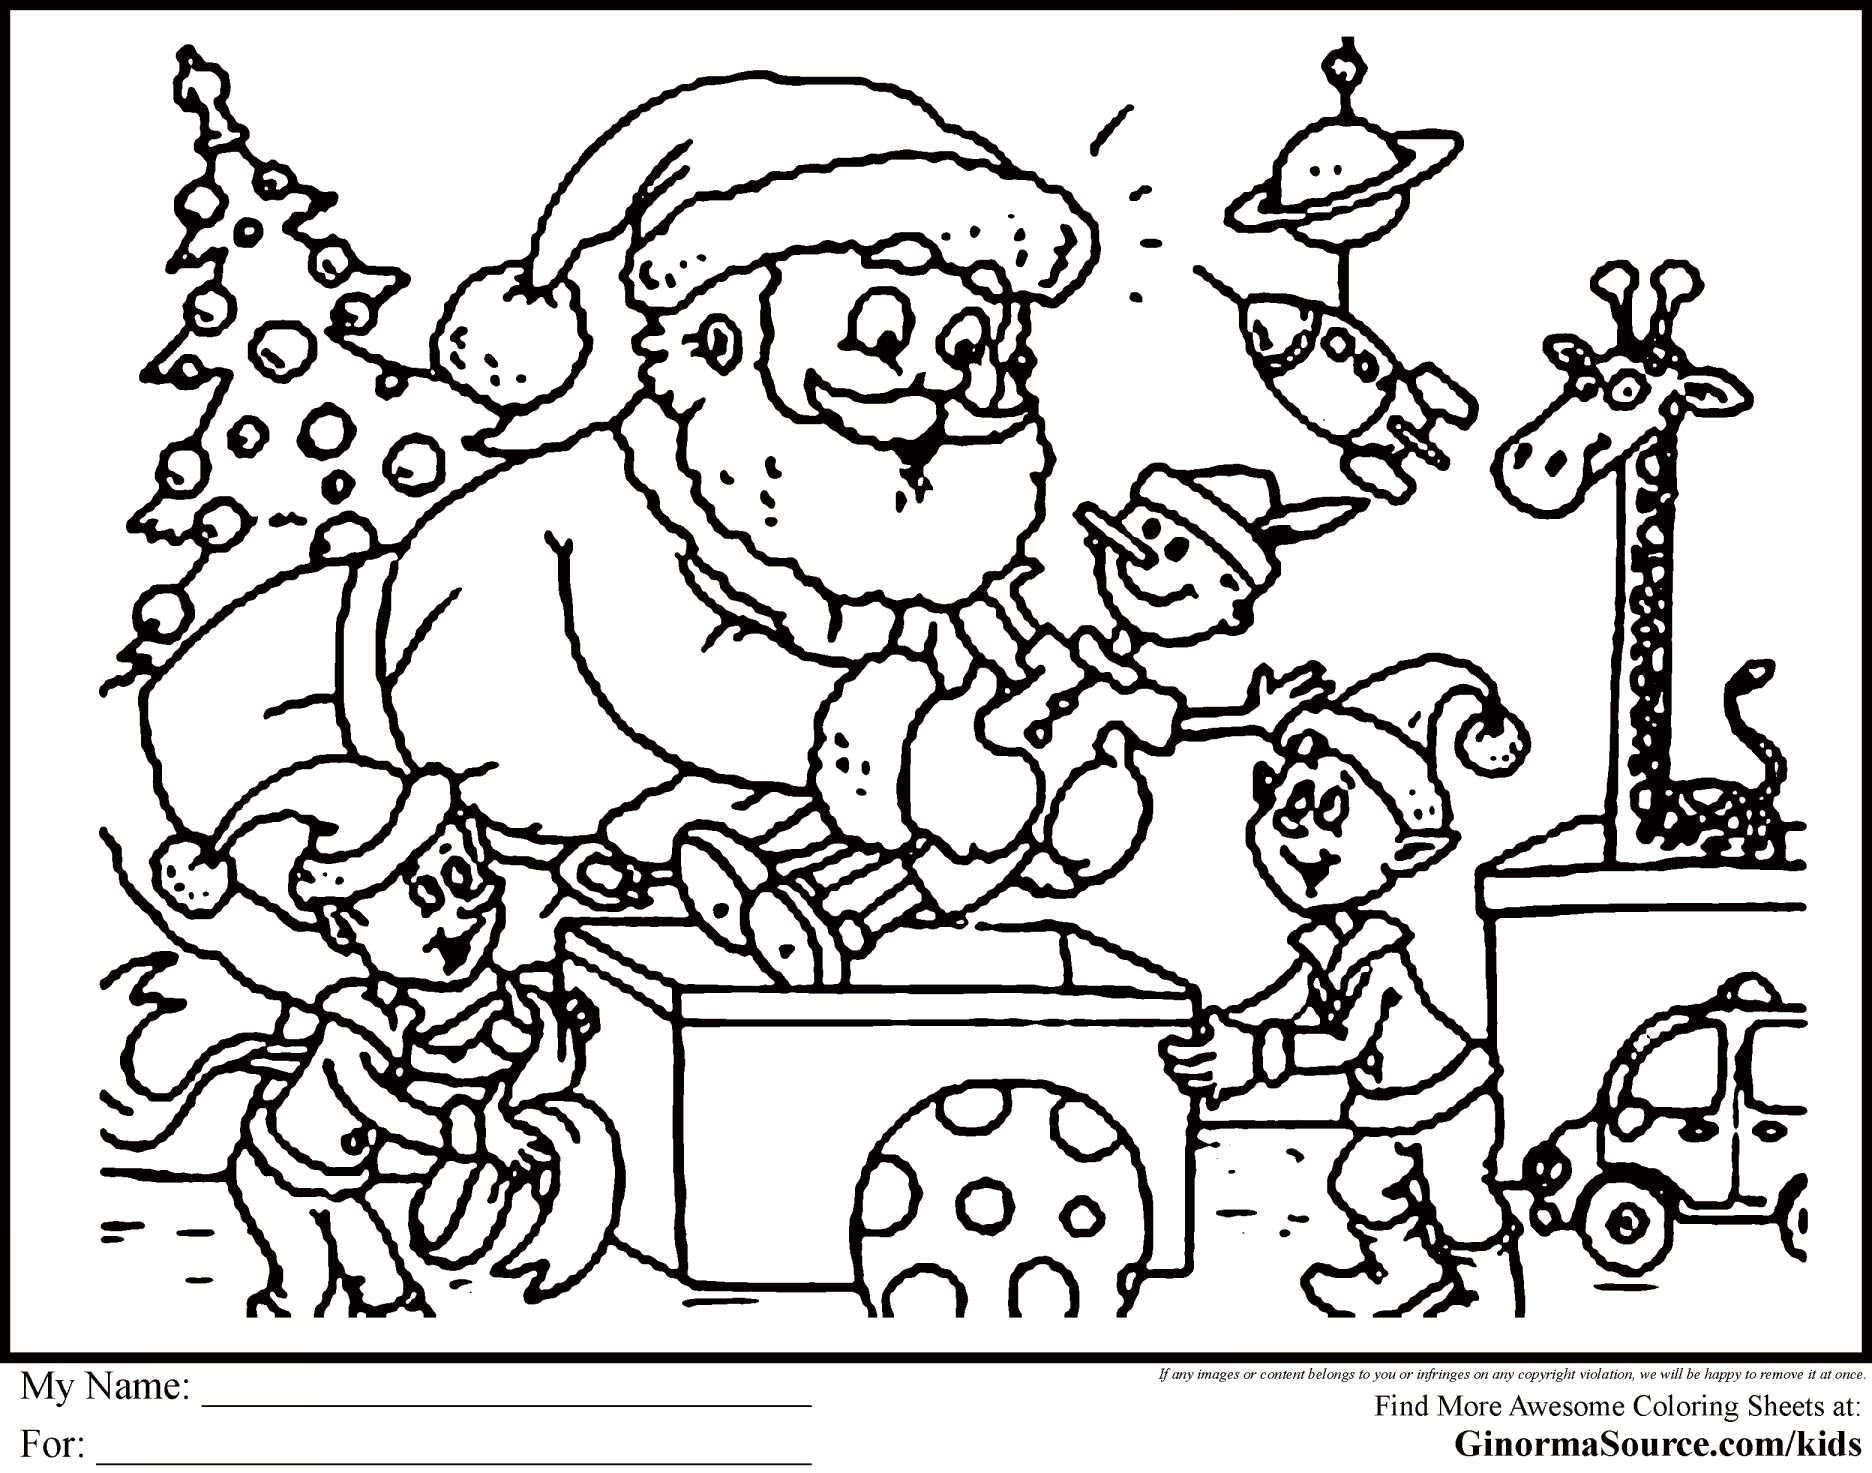 Nightmare Before Christmas Zero Coloring Pages With Jack Skellington And Pictures Simple 84